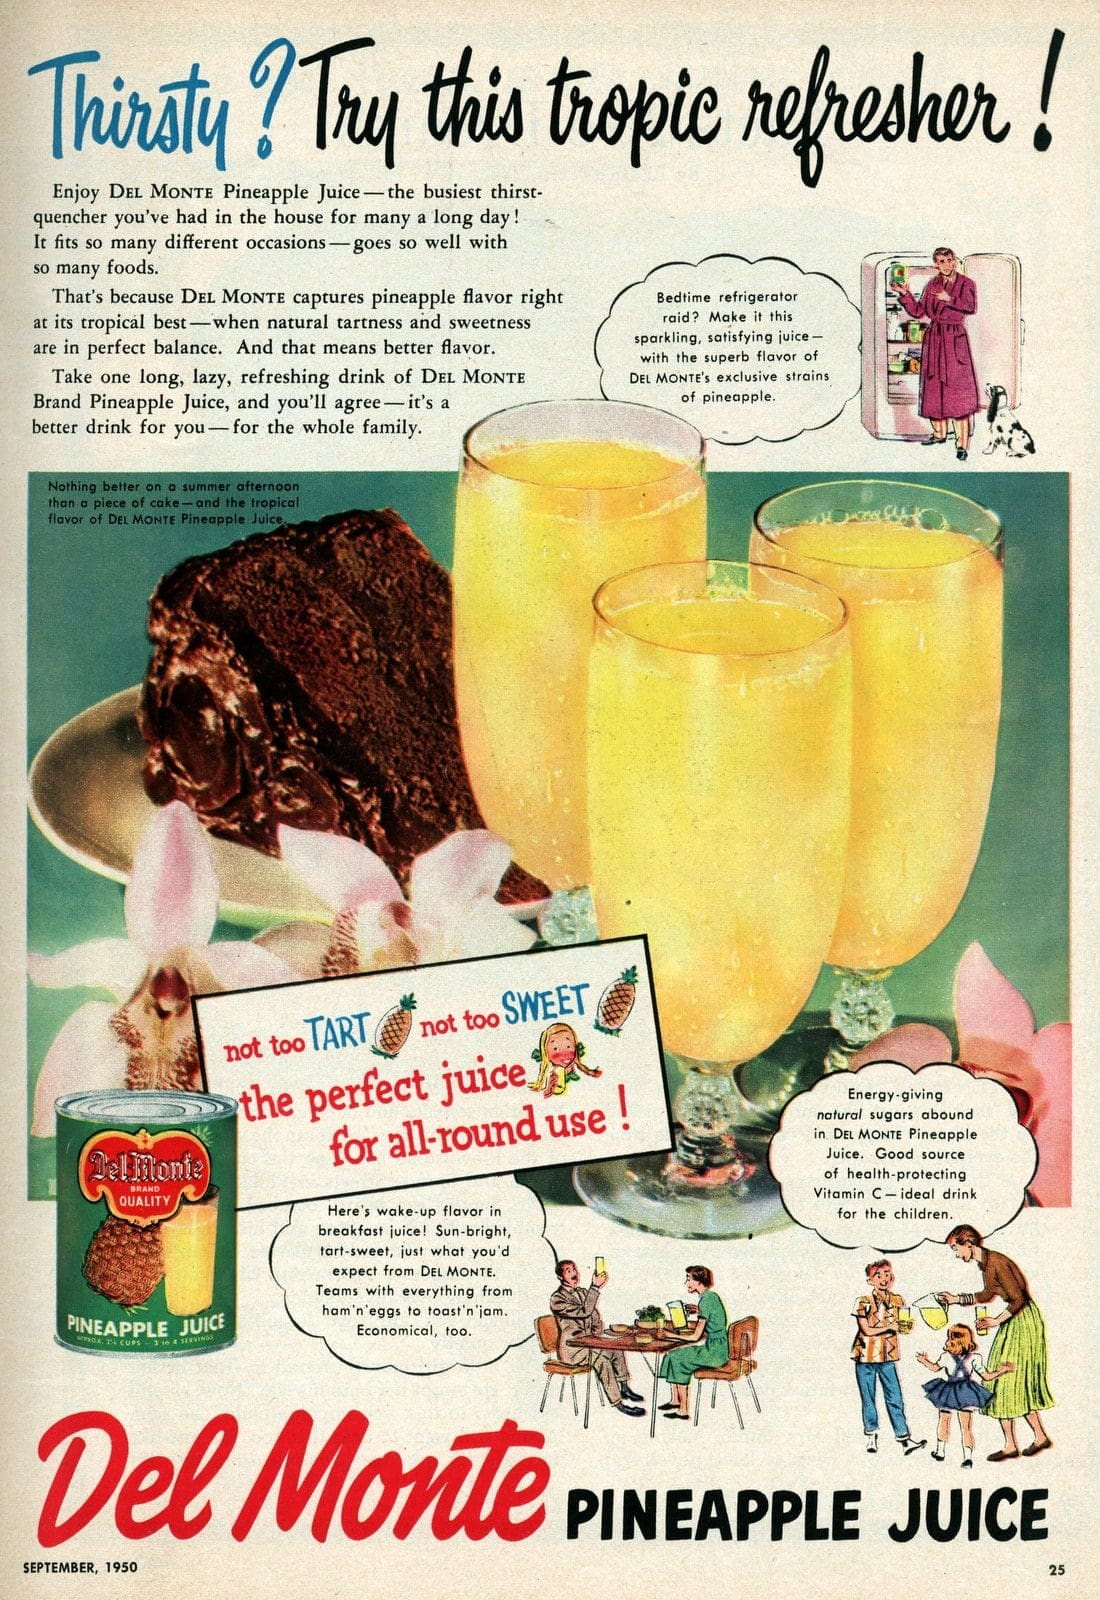 Pineapple juice tropic refresher drink from 1950